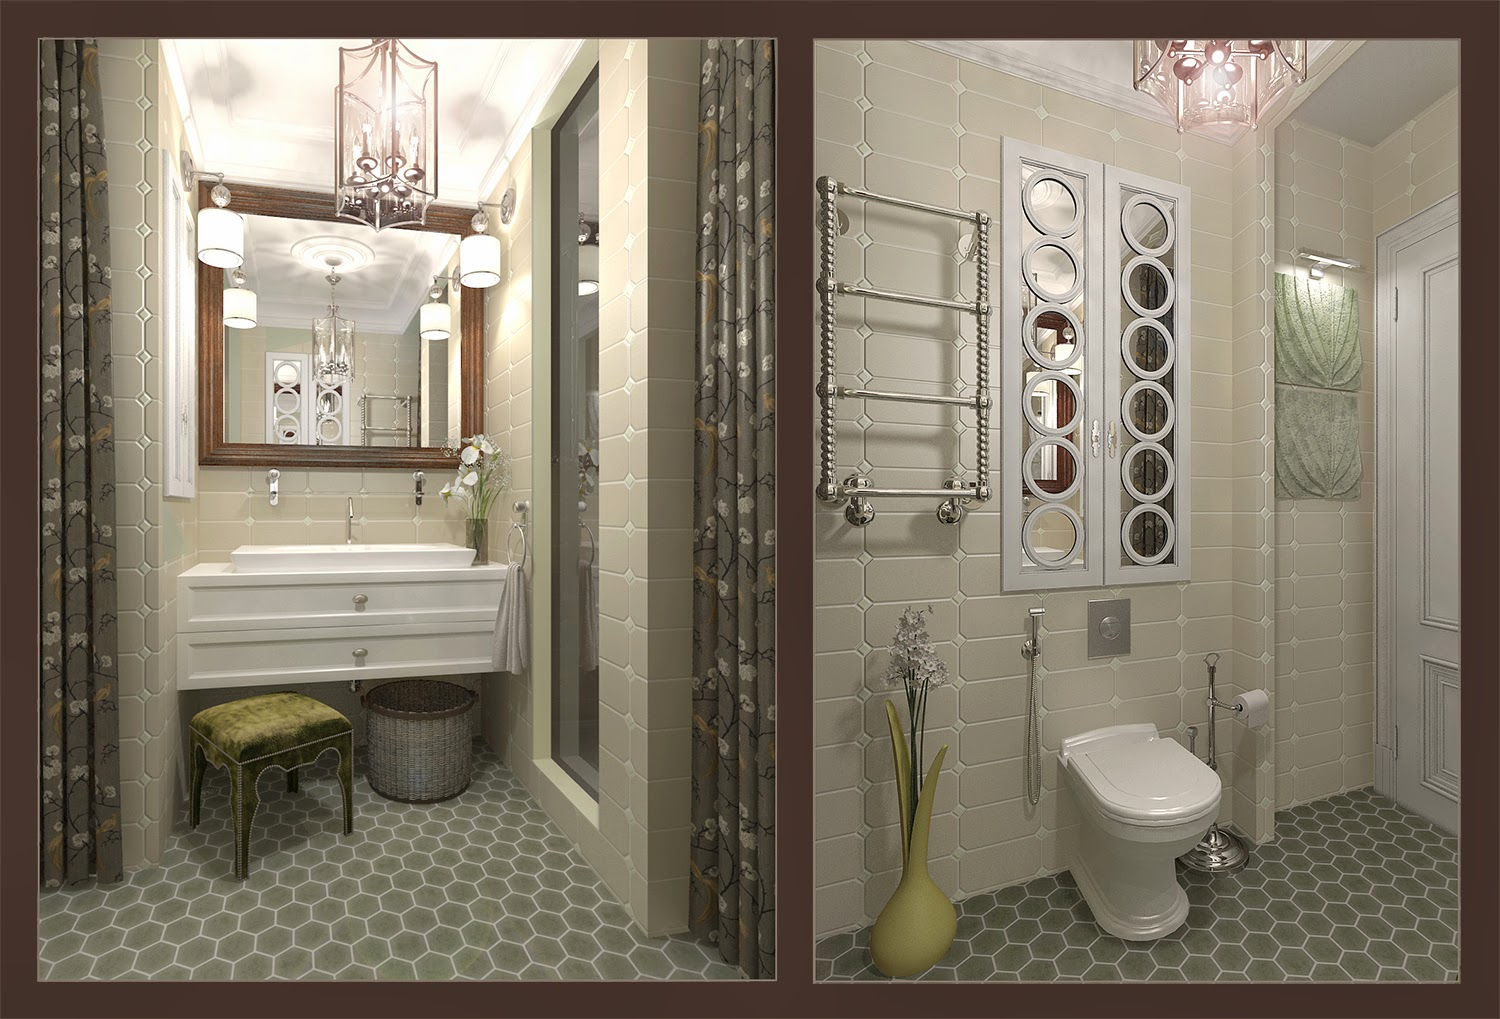 Darya girina interior design march 2015 - Interiors At Apartments At Moscow Project Of Kitchen And Dining Zone Next One Wc Including Main Wc For Owner Masculine Style And Guest Wc Wc